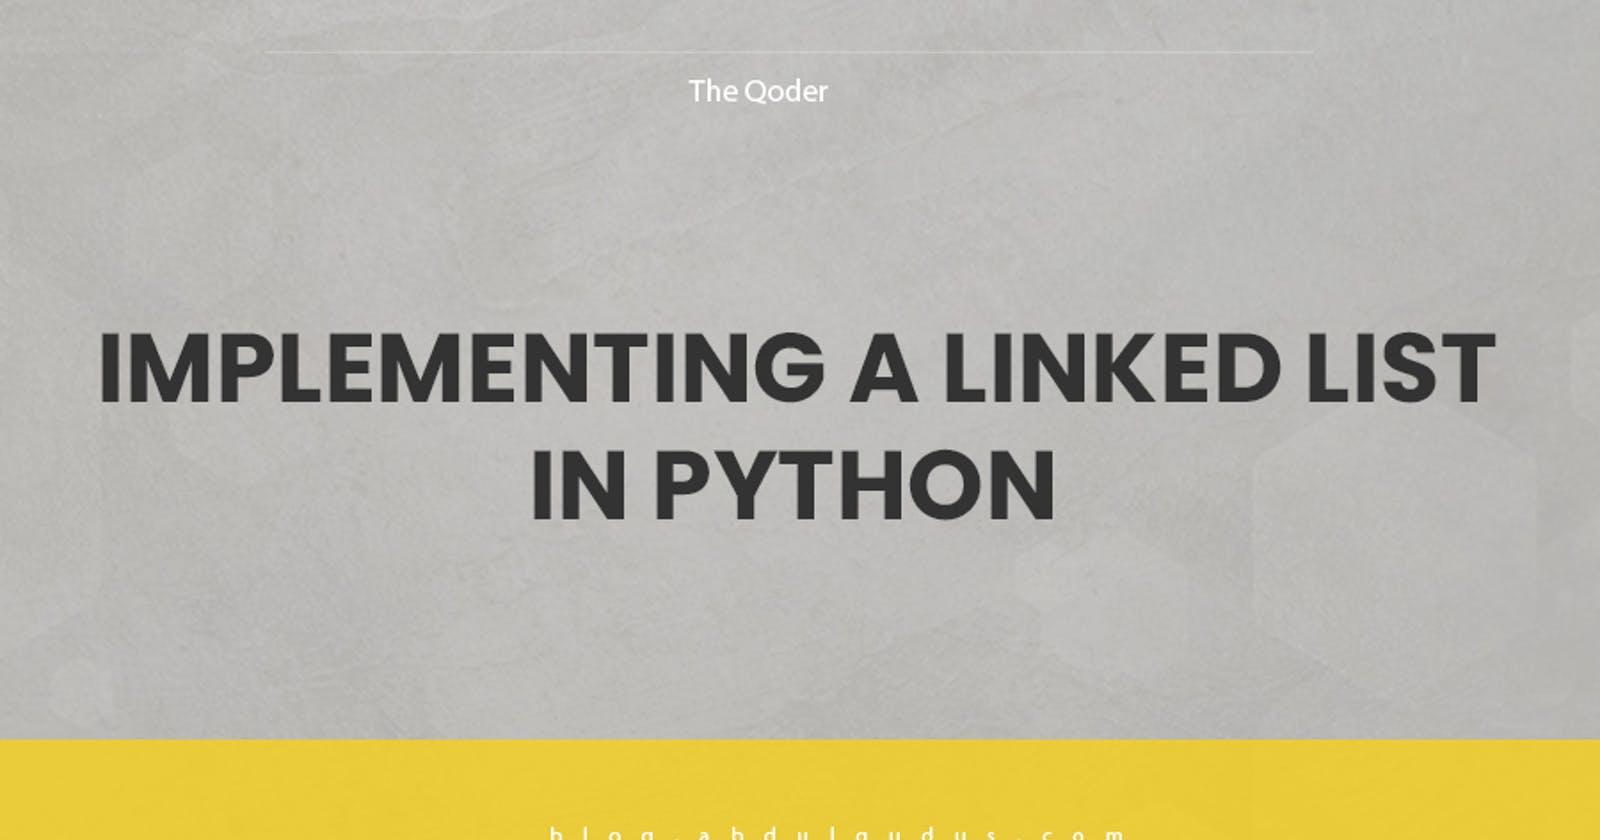 Implementing a Linked List in Python: Easy as 1,2,3.